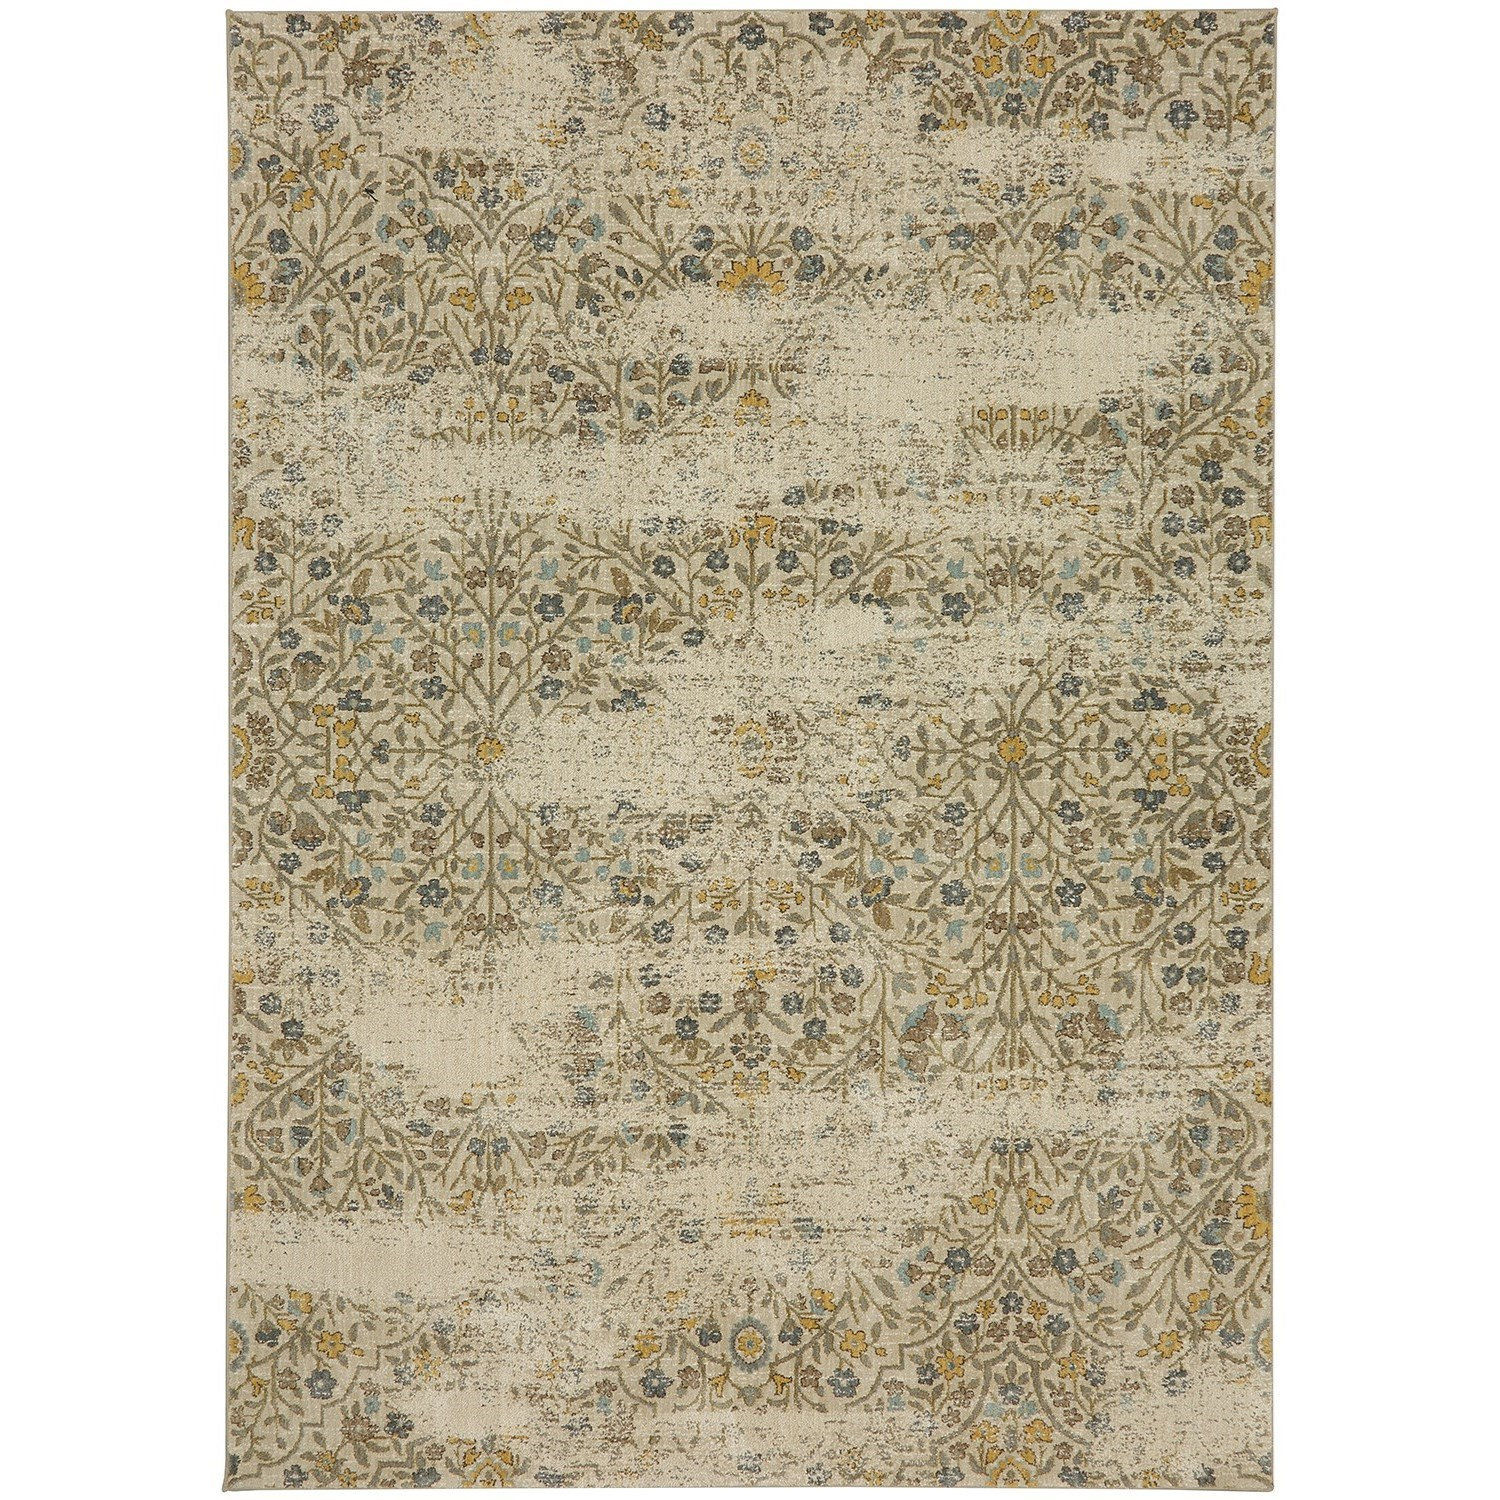 """Touchstone 3' 6""""x5' 6"""" Rectangle Floral Area Rug by Karastan Rugs at Darvin Furniture"""